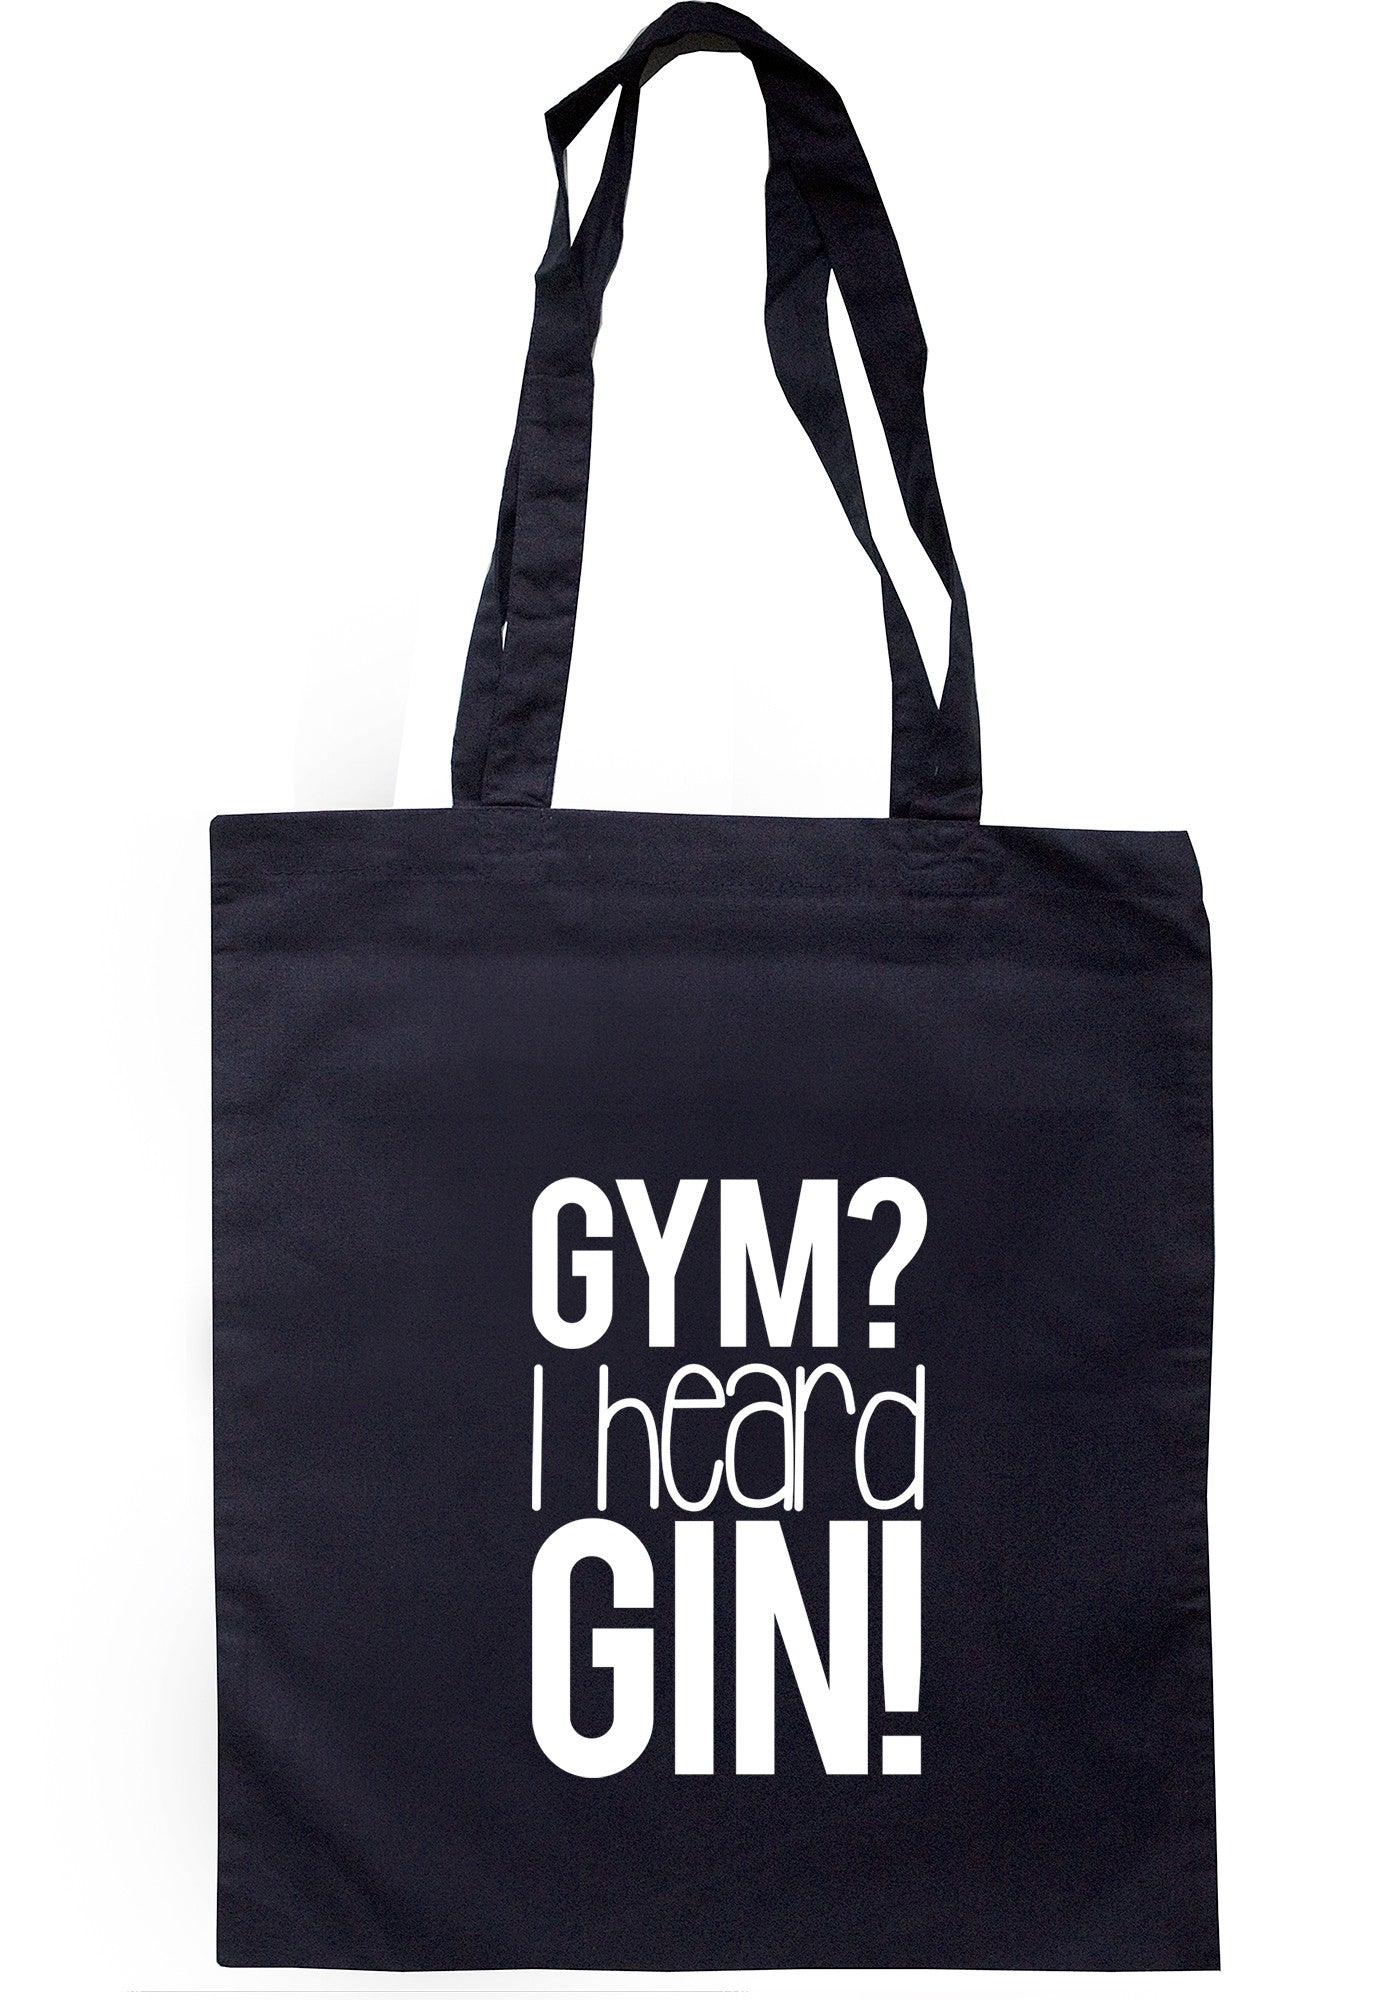 Gym? I Heard Gin! Tote Bag TB1100 - Illustrated Identity Ltd.